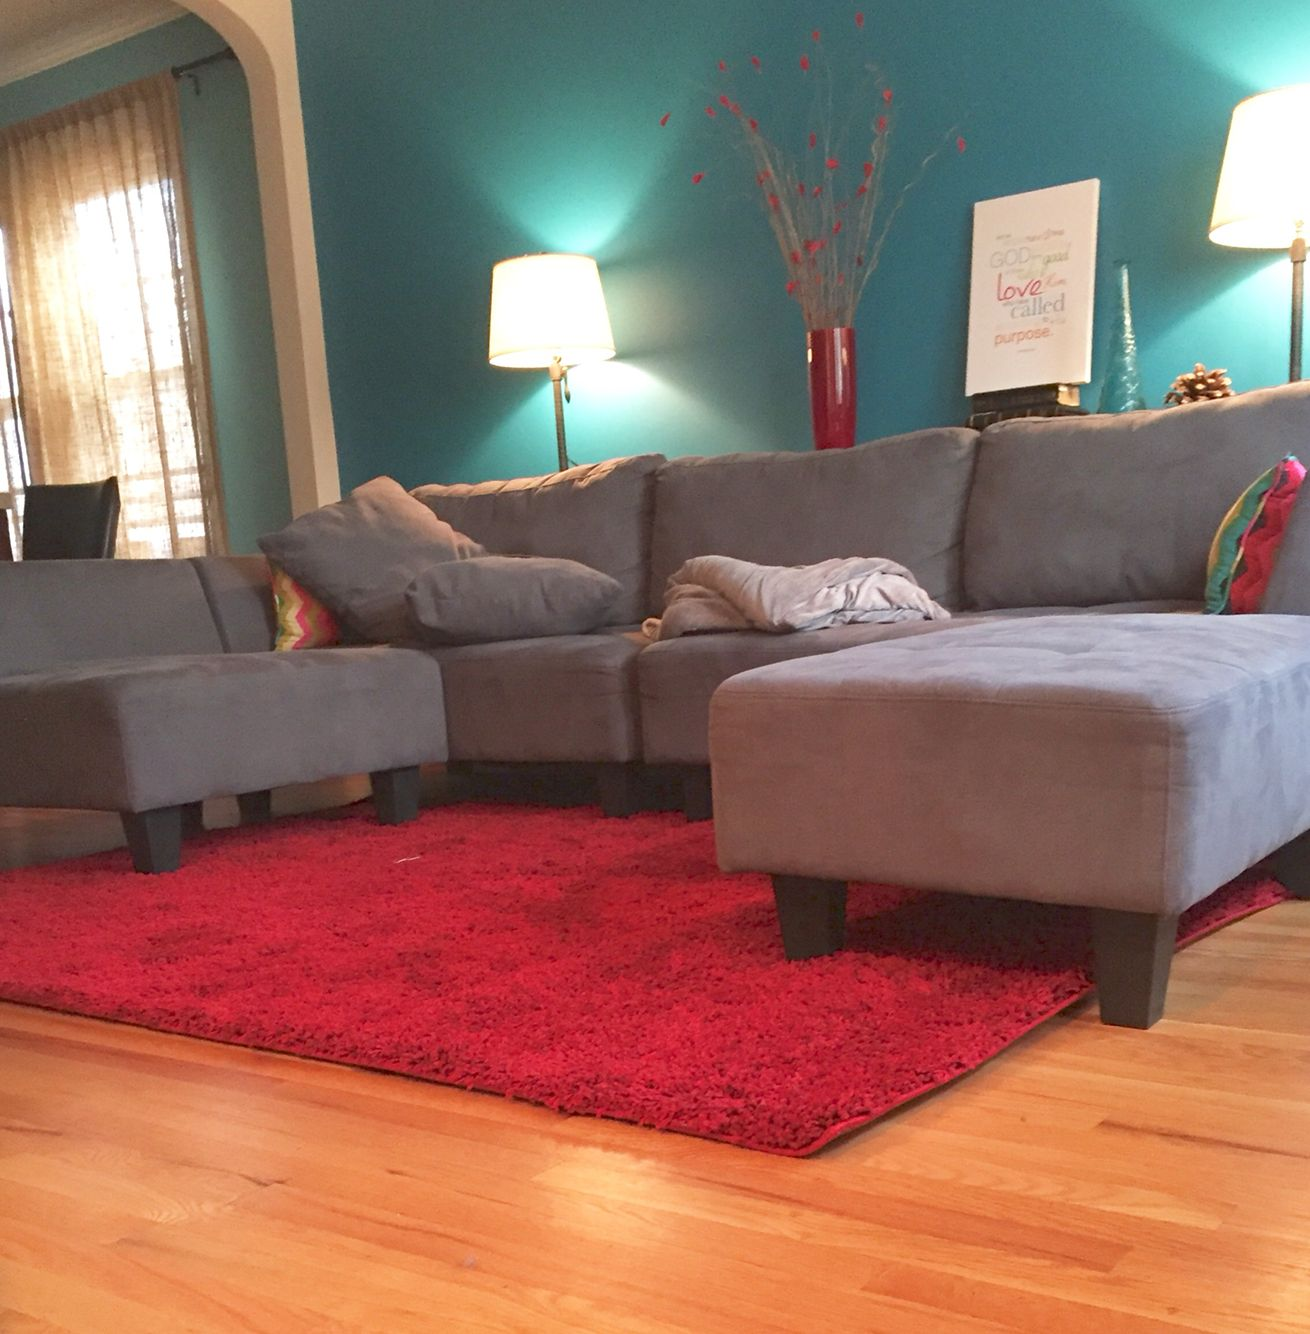 Living Room Red Rug living room idea: teal blue wall, grey couch, ruby red rug